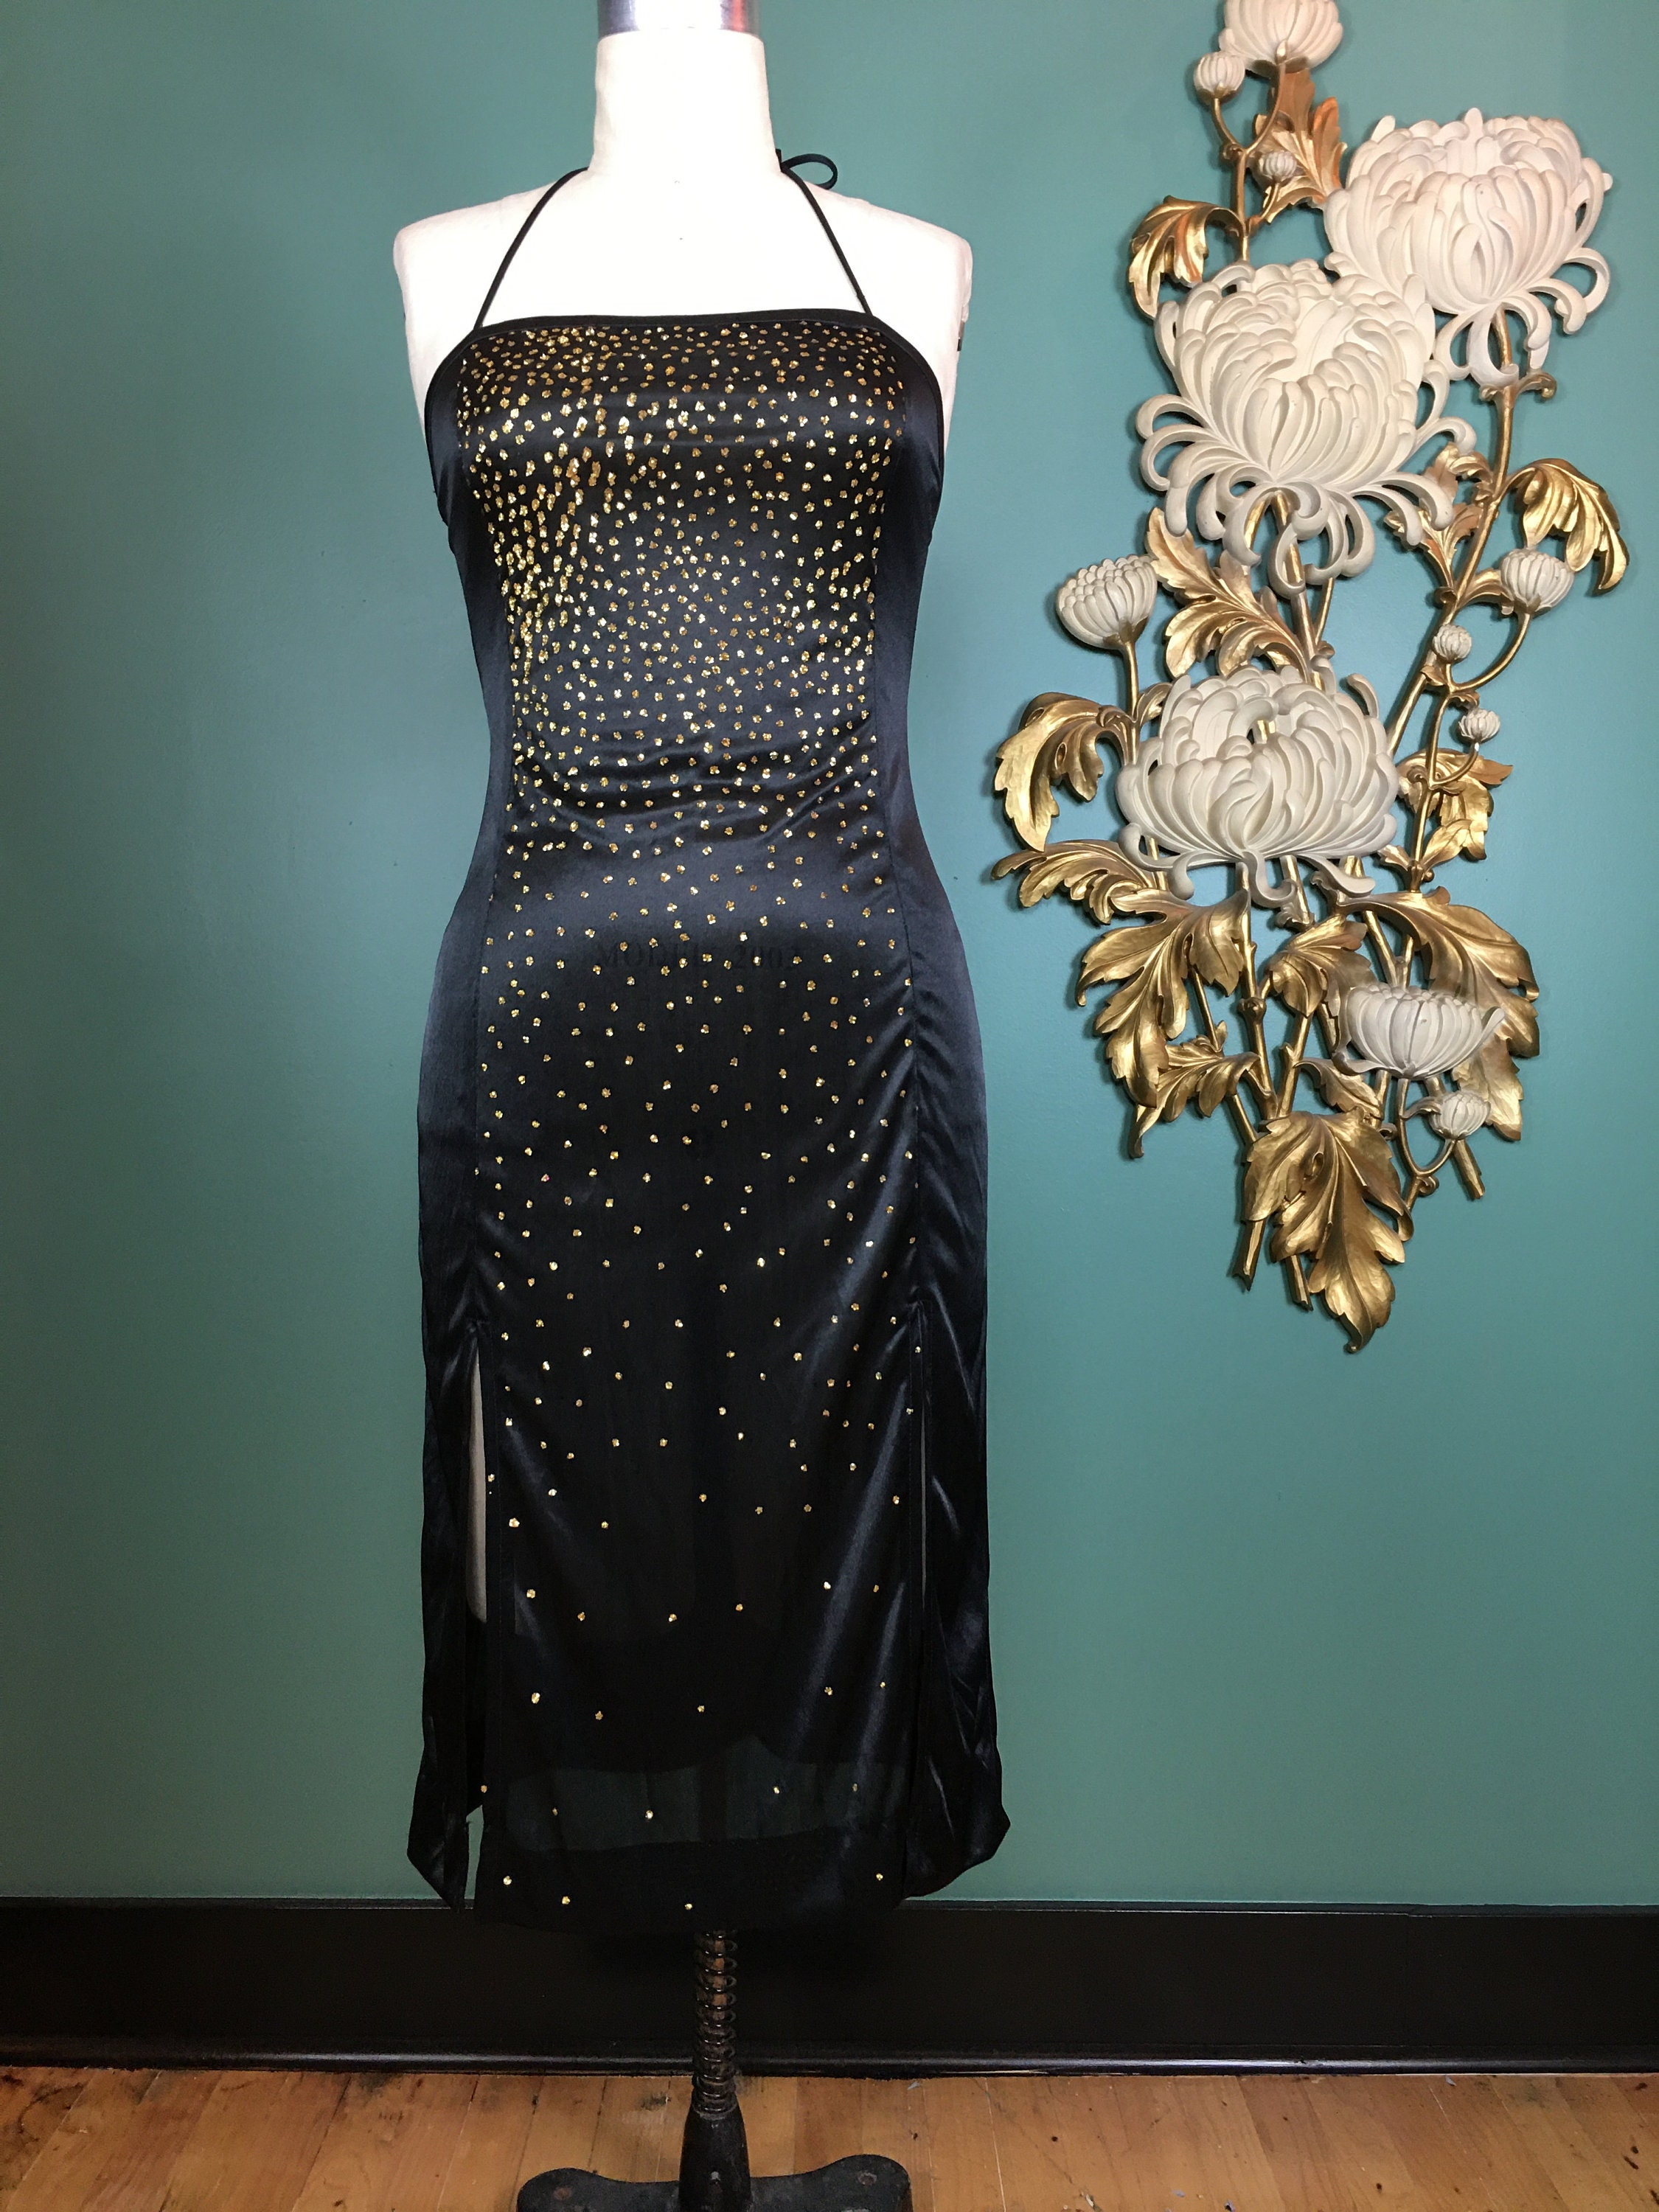 80s Dresses | Casual to Party Dresses 1970S Halter Dress, Gold Glitter Disco Size Small, Dress By Funky, Vintage 70S Slinky Black 26 Waist, Metallic $17.00 AT vintagedancer.com